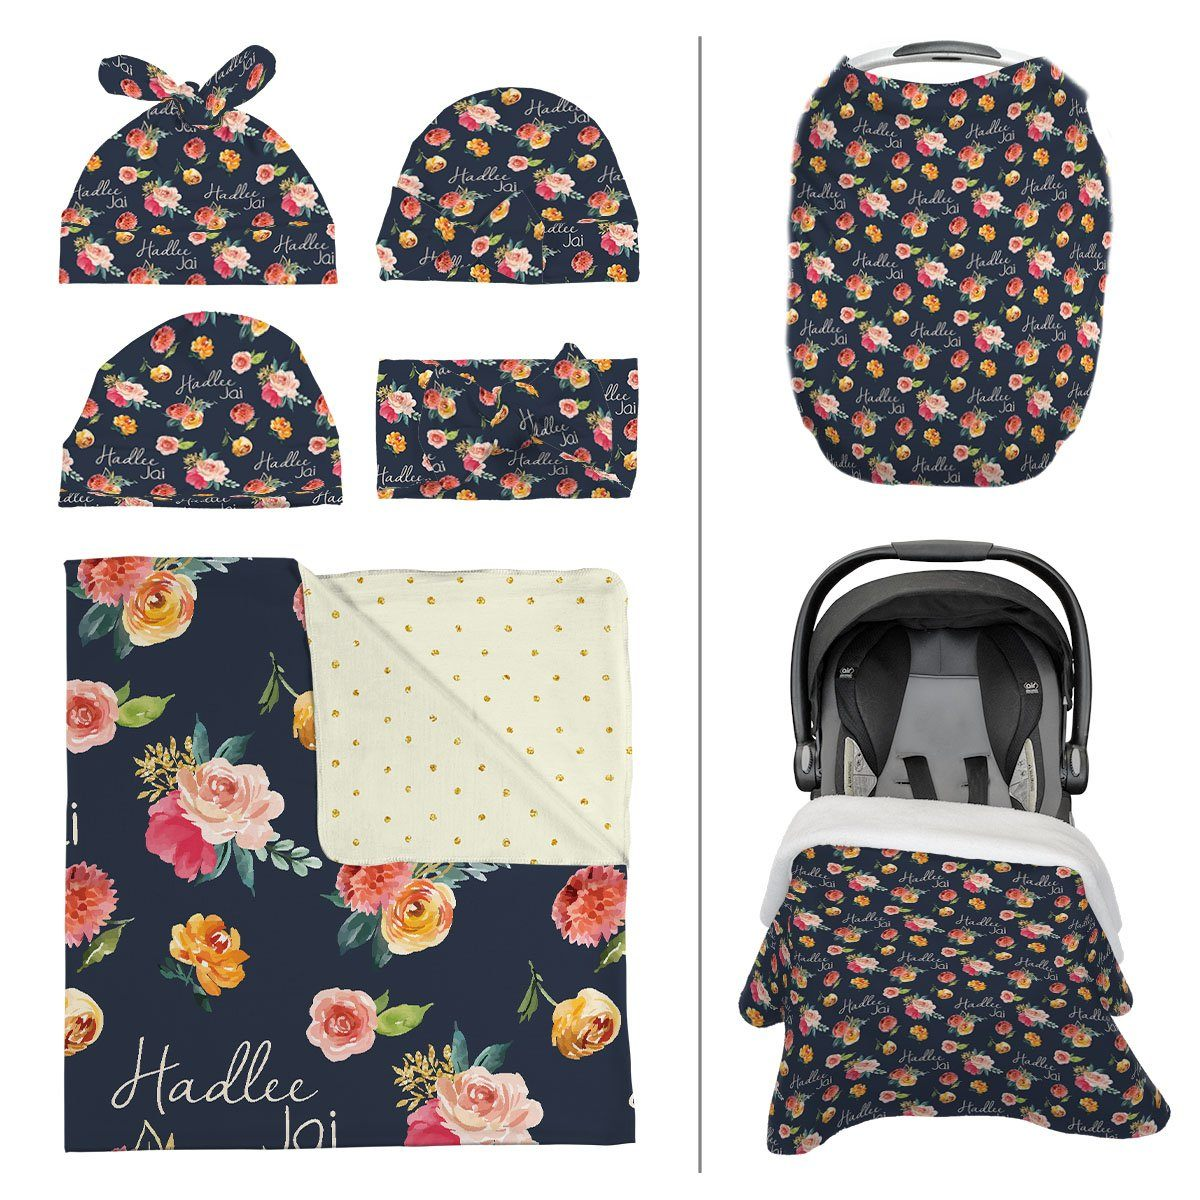 Hadlee's Fall Garden | Take Me Home Bundle